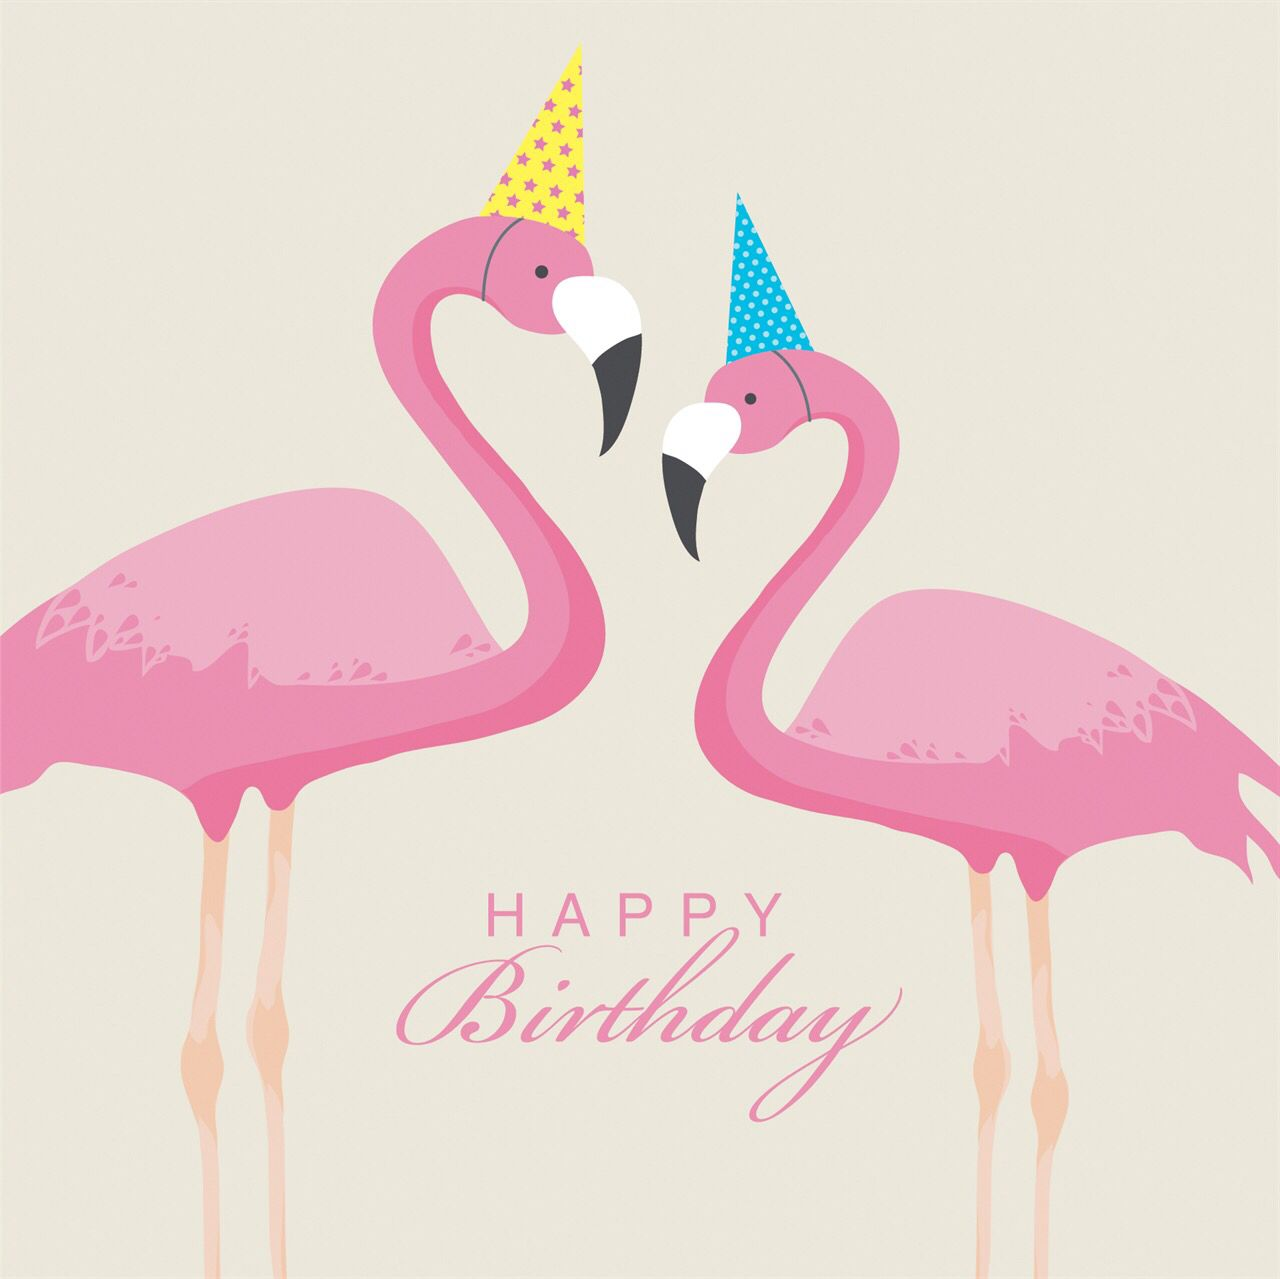 hbd flamingo feliz cumple pinterest felicitaciones felicitacion cumplea os y cumplea os. Black Bedroom Furniture Sets. Home Design Ideas